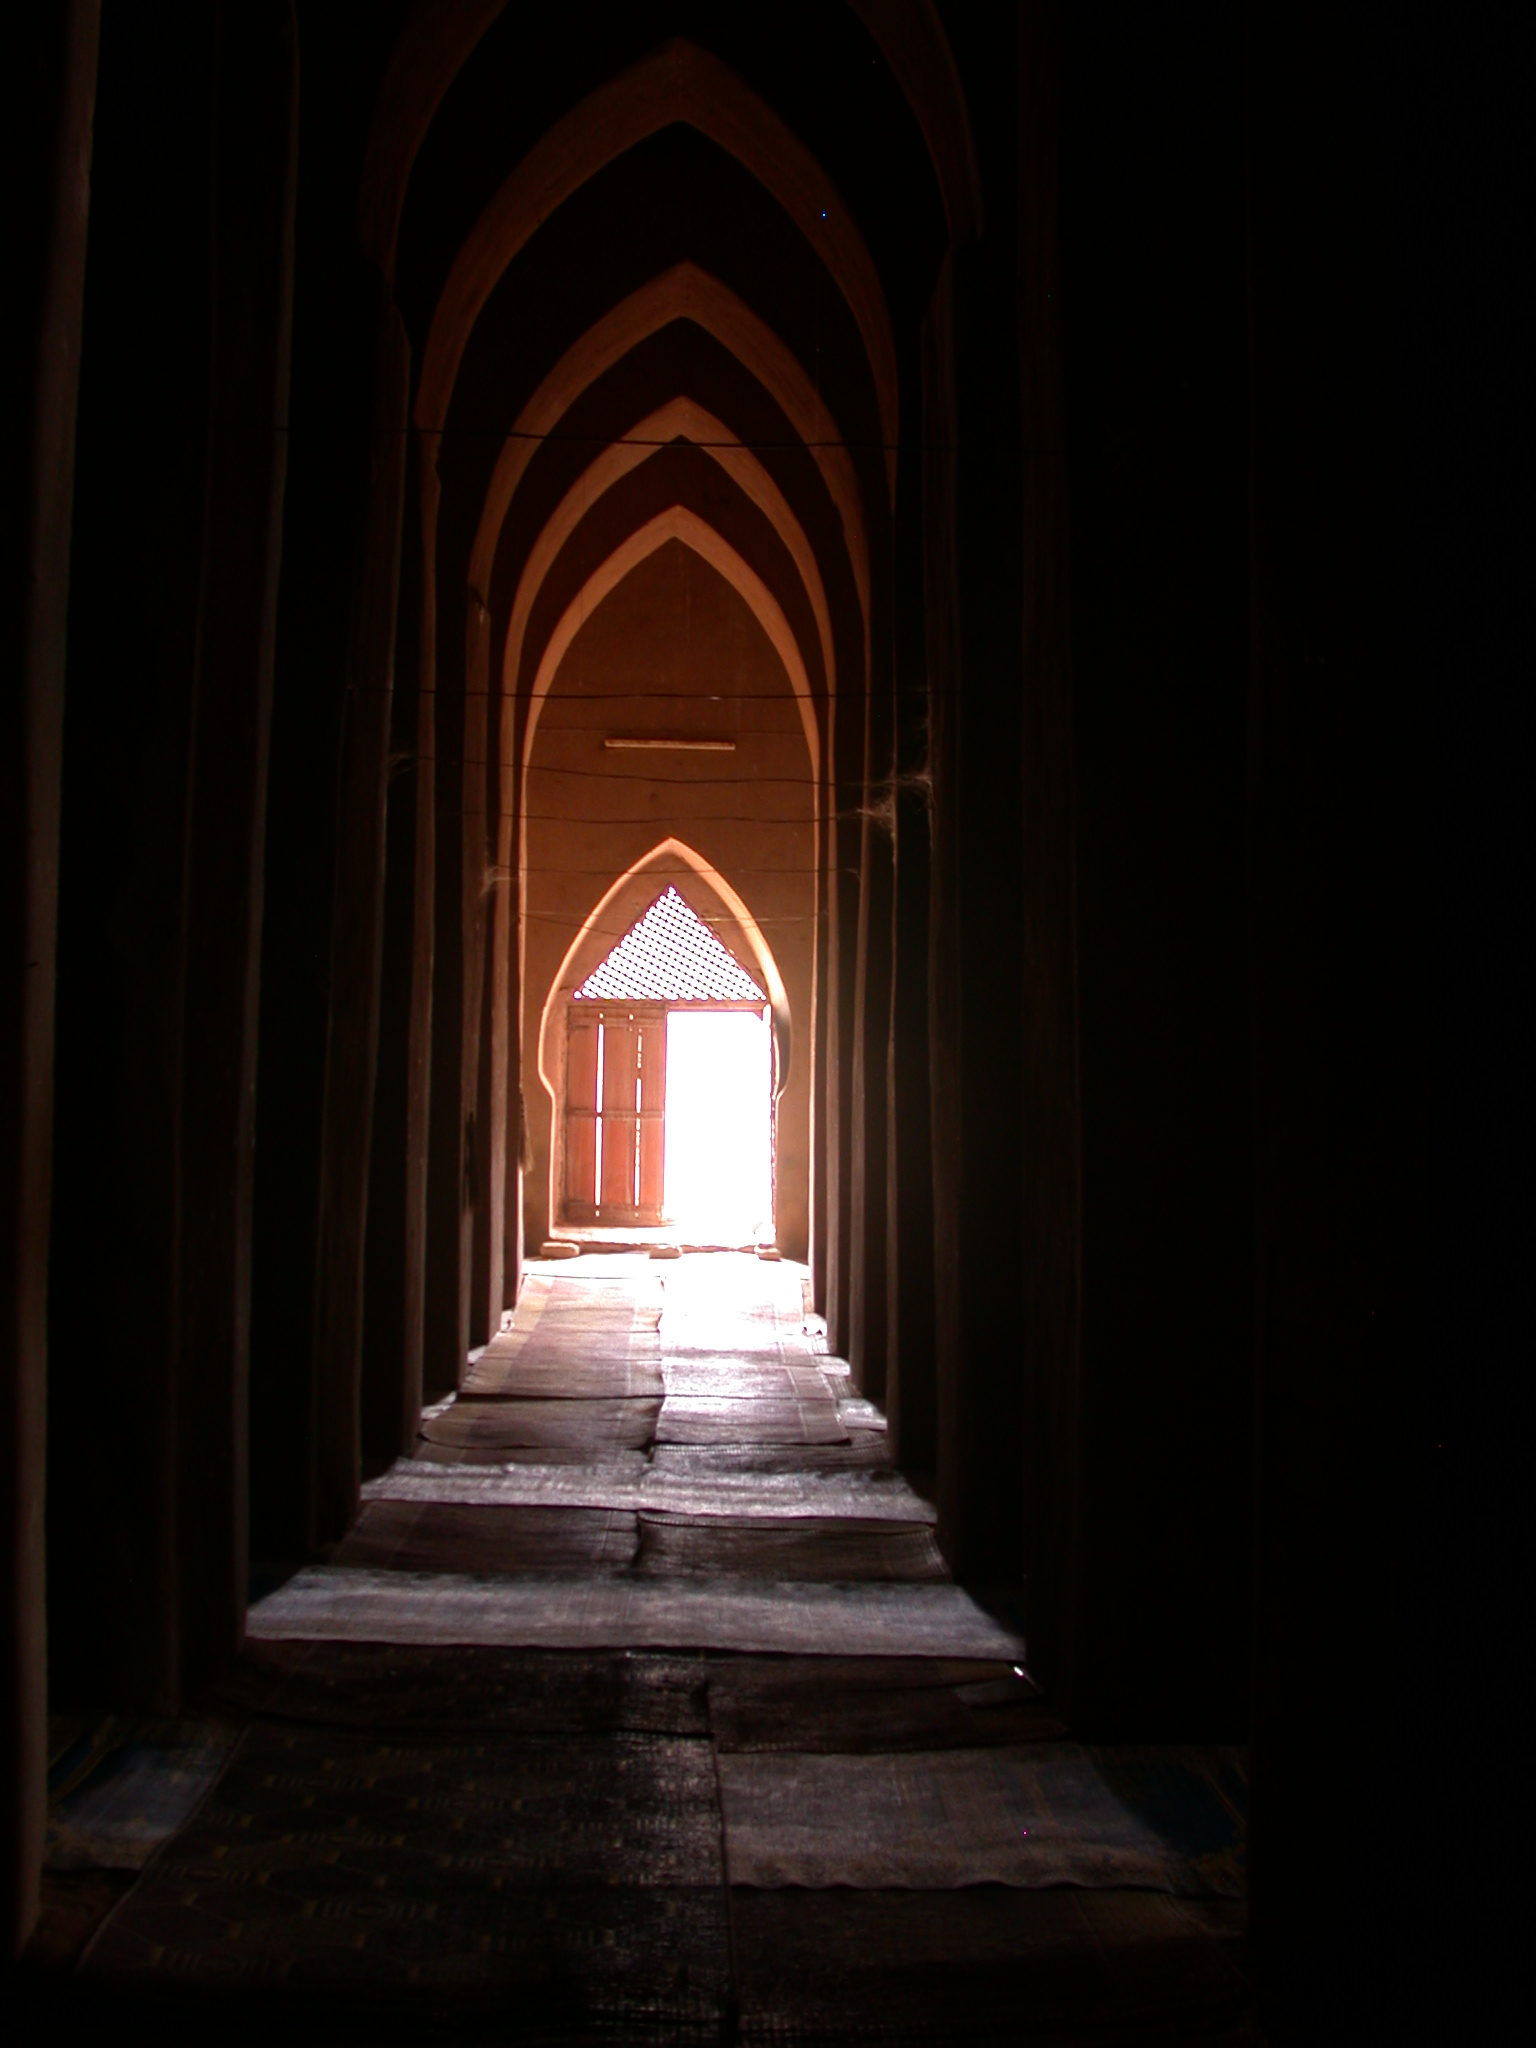 Interior Corridor of Mosque in Jenne, Mali